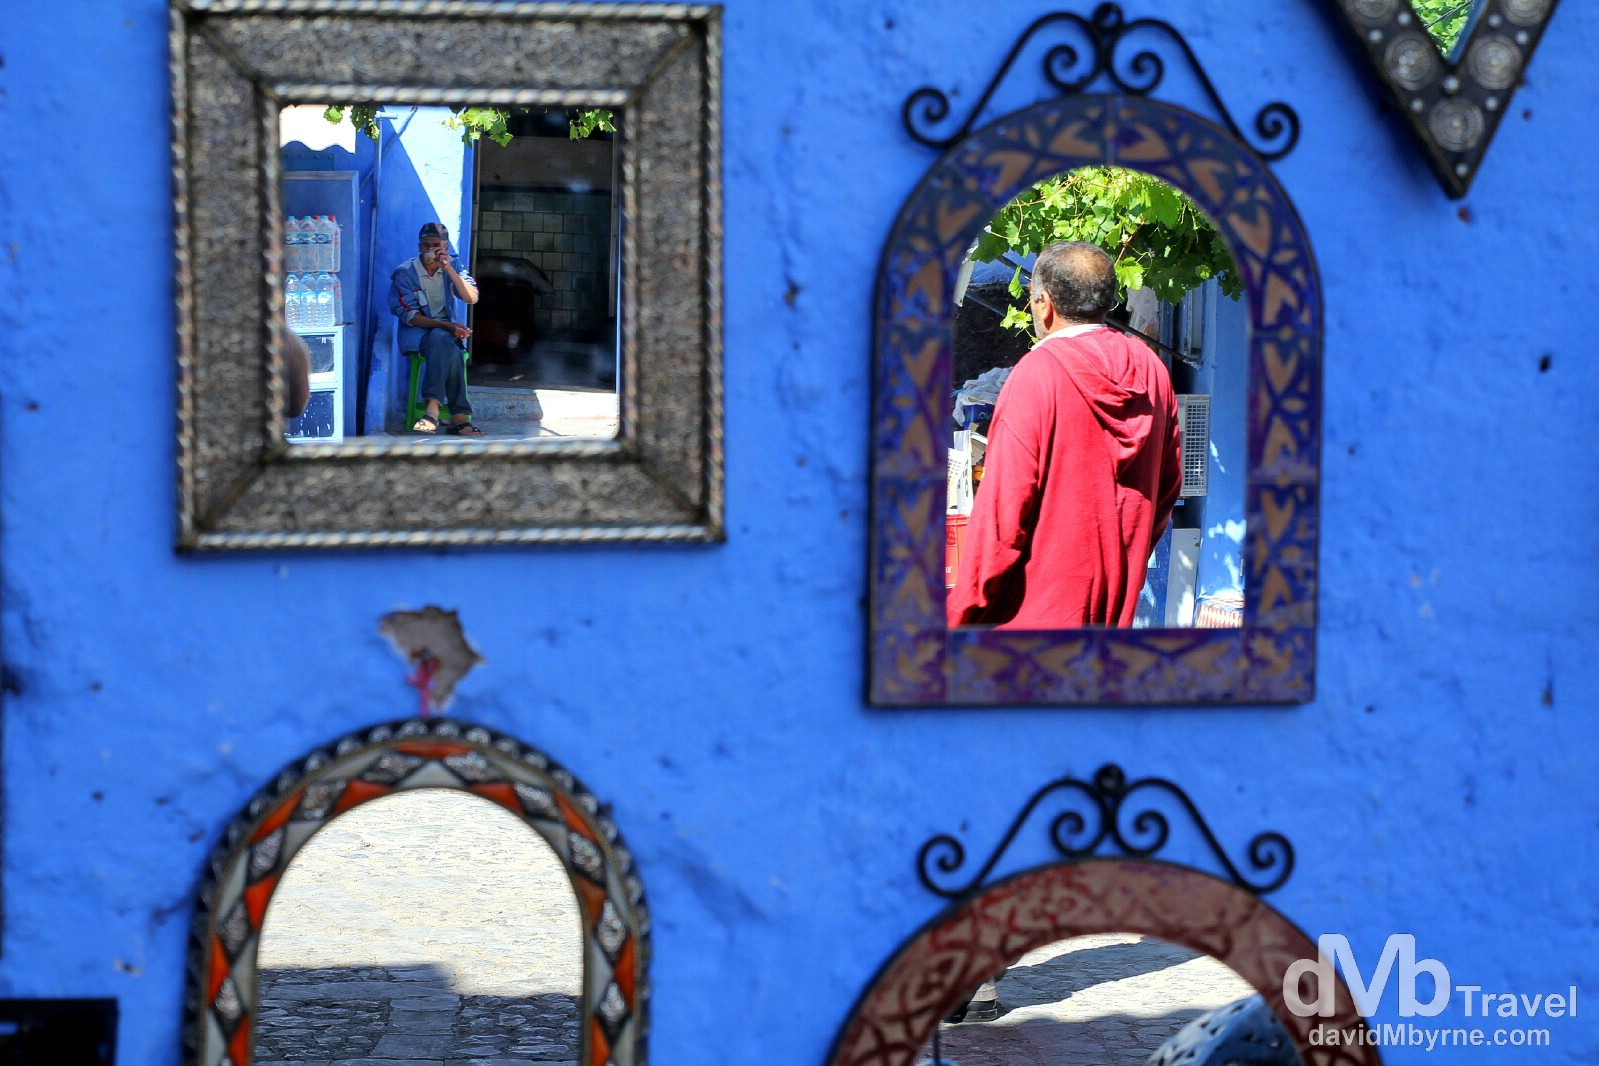 Reflections in mirrors for sale in the lanes of the medina in Chefchaouen, Morocco. June 1st, 2014.